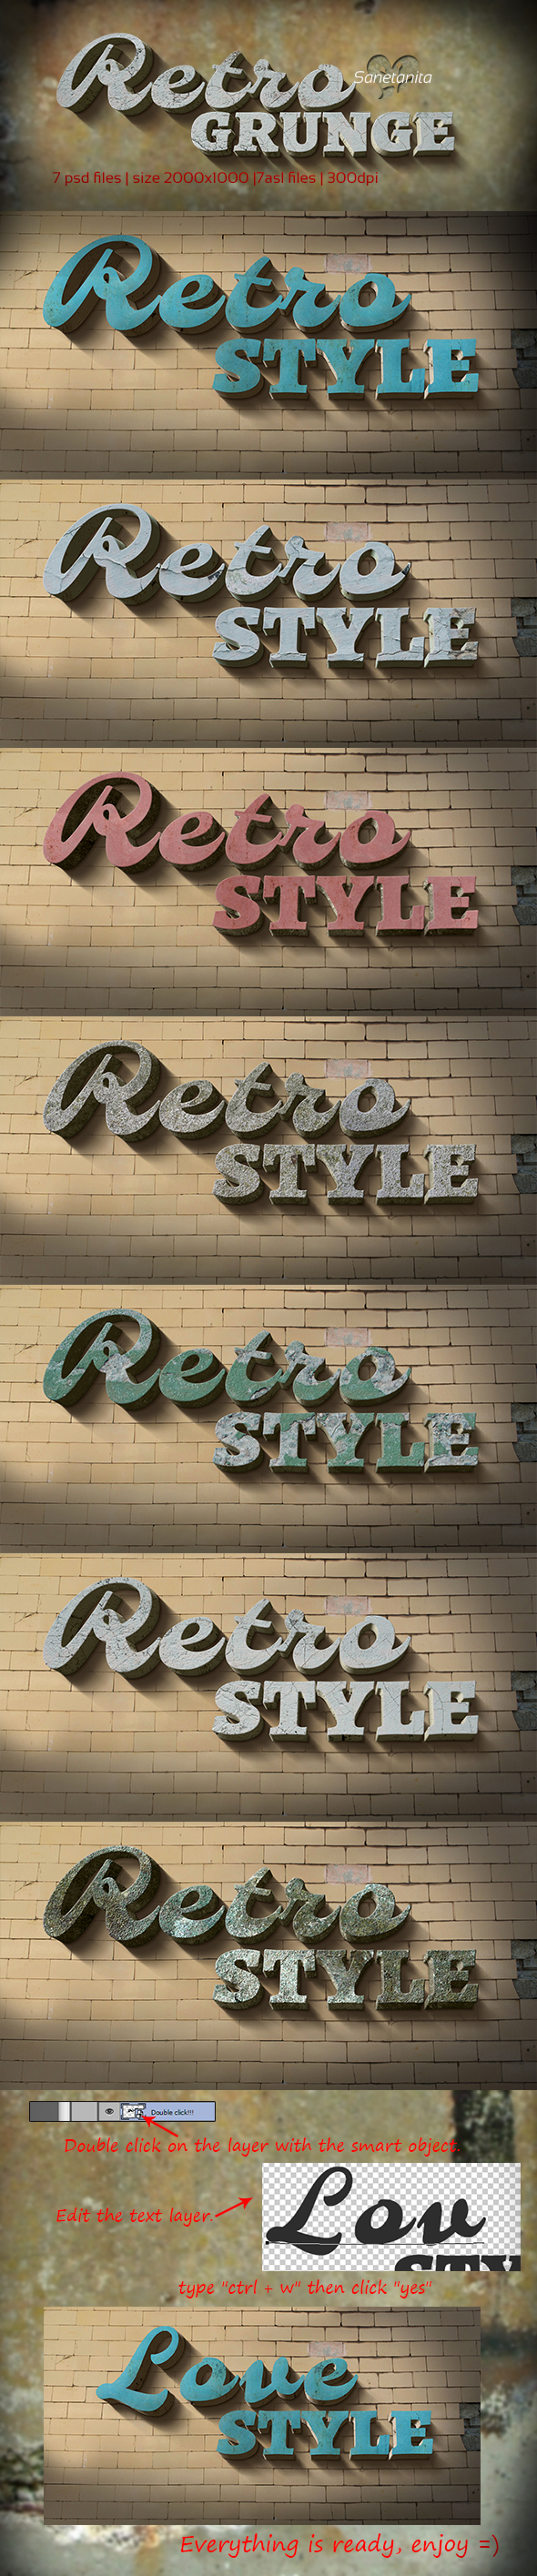 3D Retro Grunge Styles - Text Effects Styles